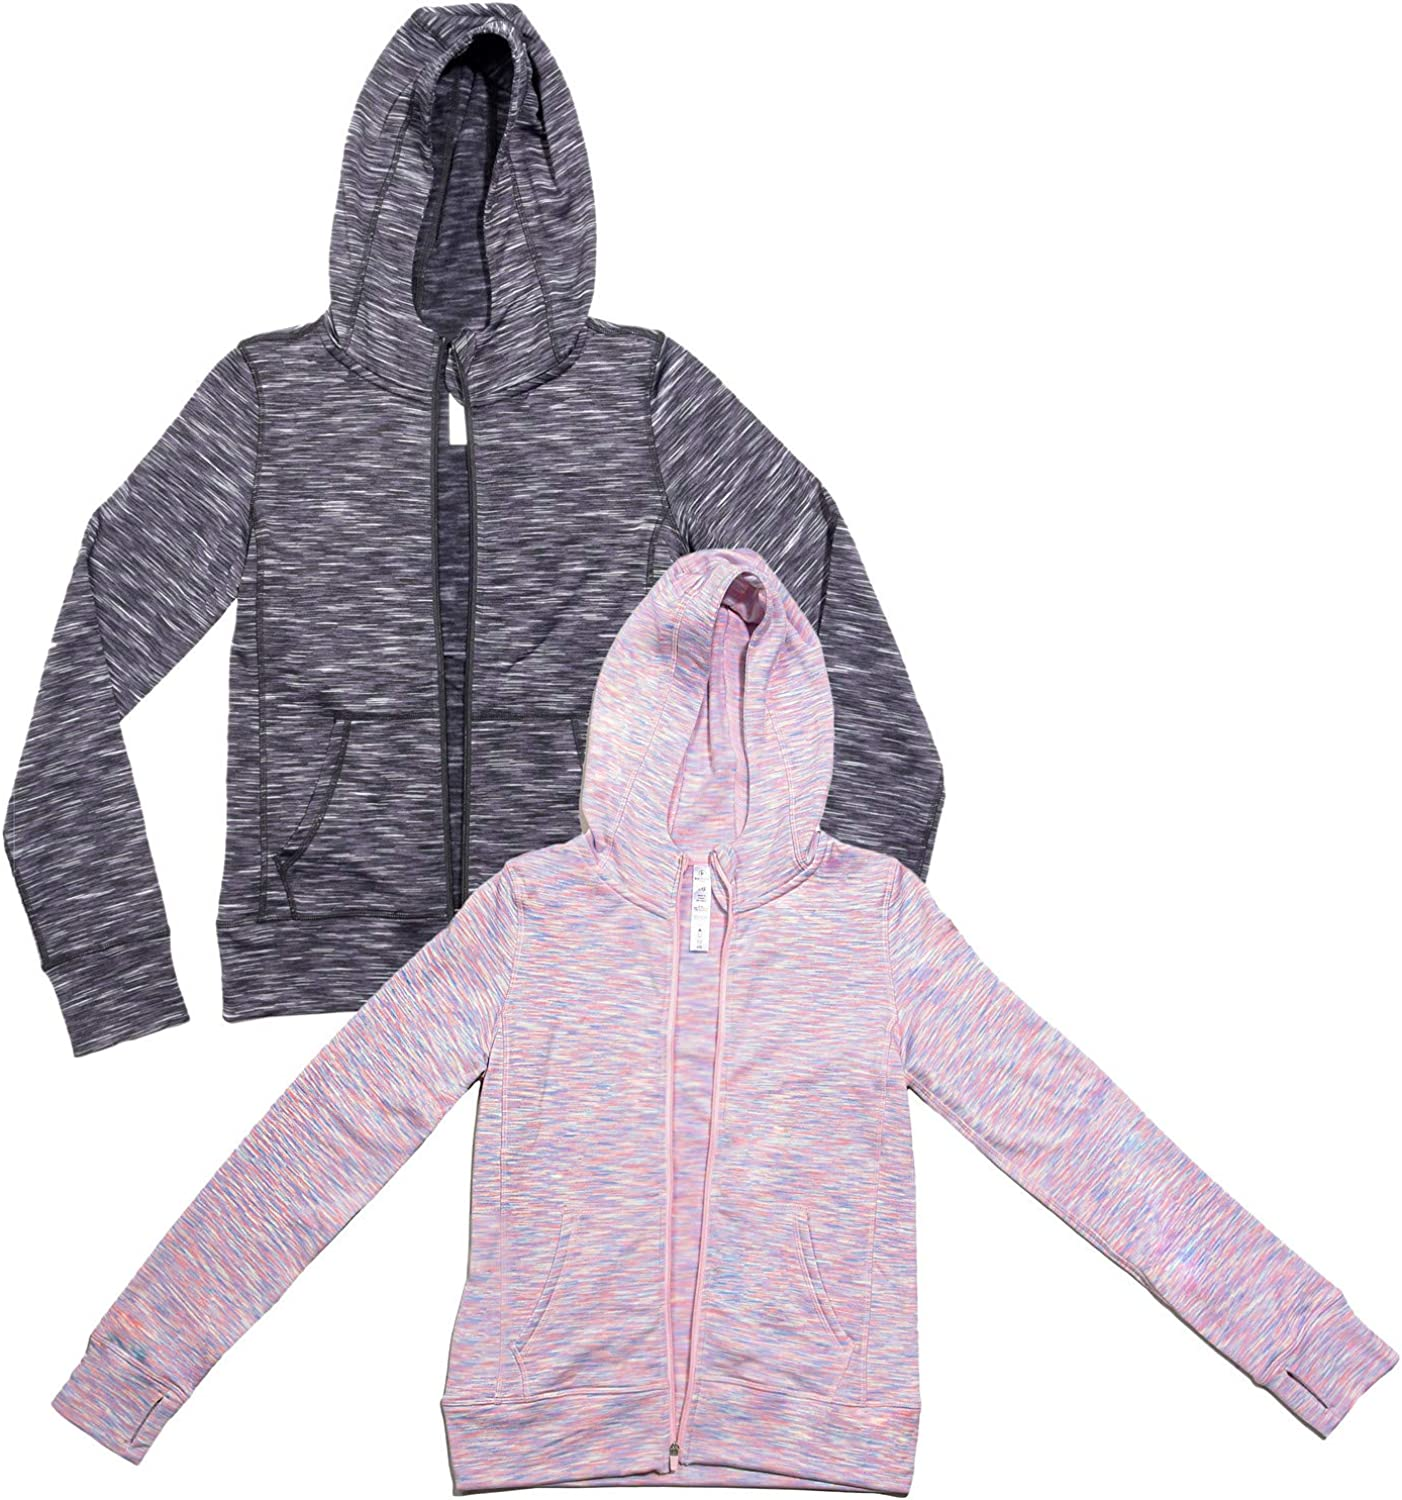 90 Degree By Reflex Girls 2 Pack Brushed Inside Hoodie Jacket